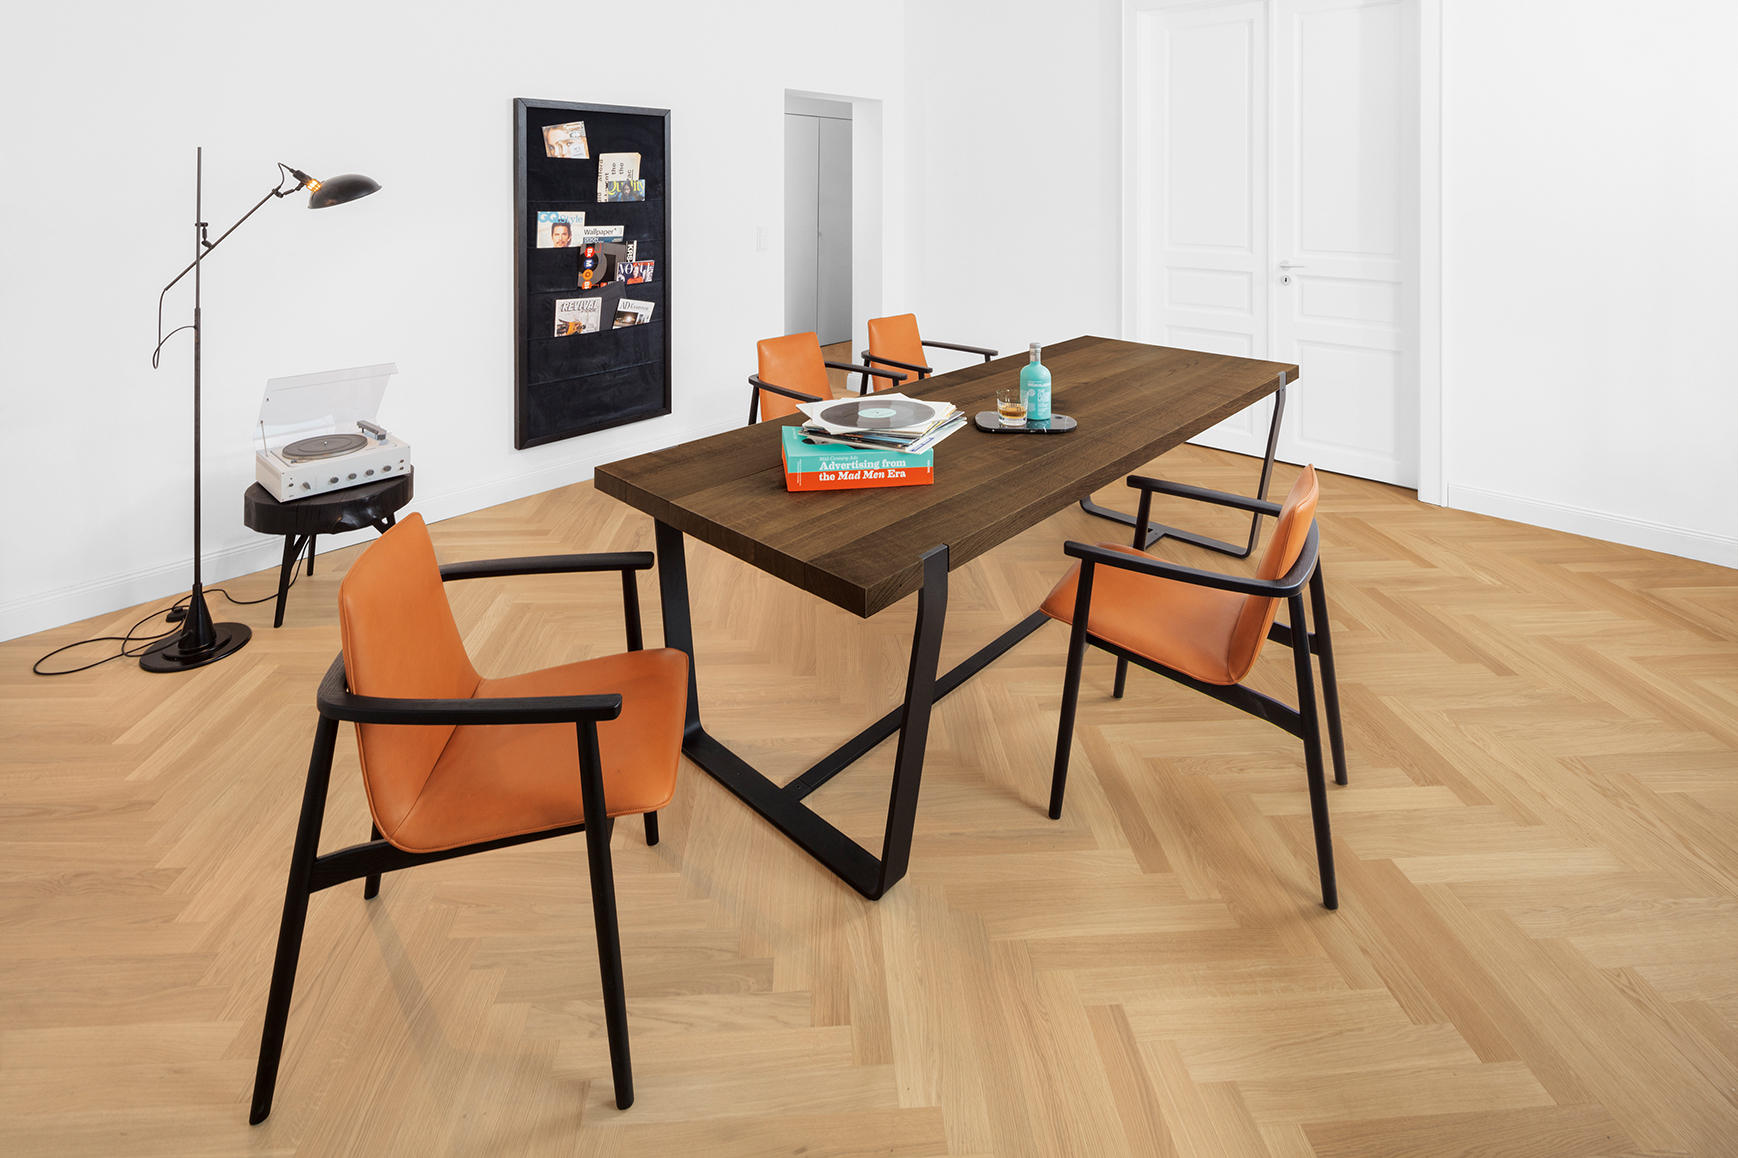 bb 11 clamp table restaurant tables from janua christian seisenberger architonic. Black Bedroom Furniture Sets. Home Design Ideas